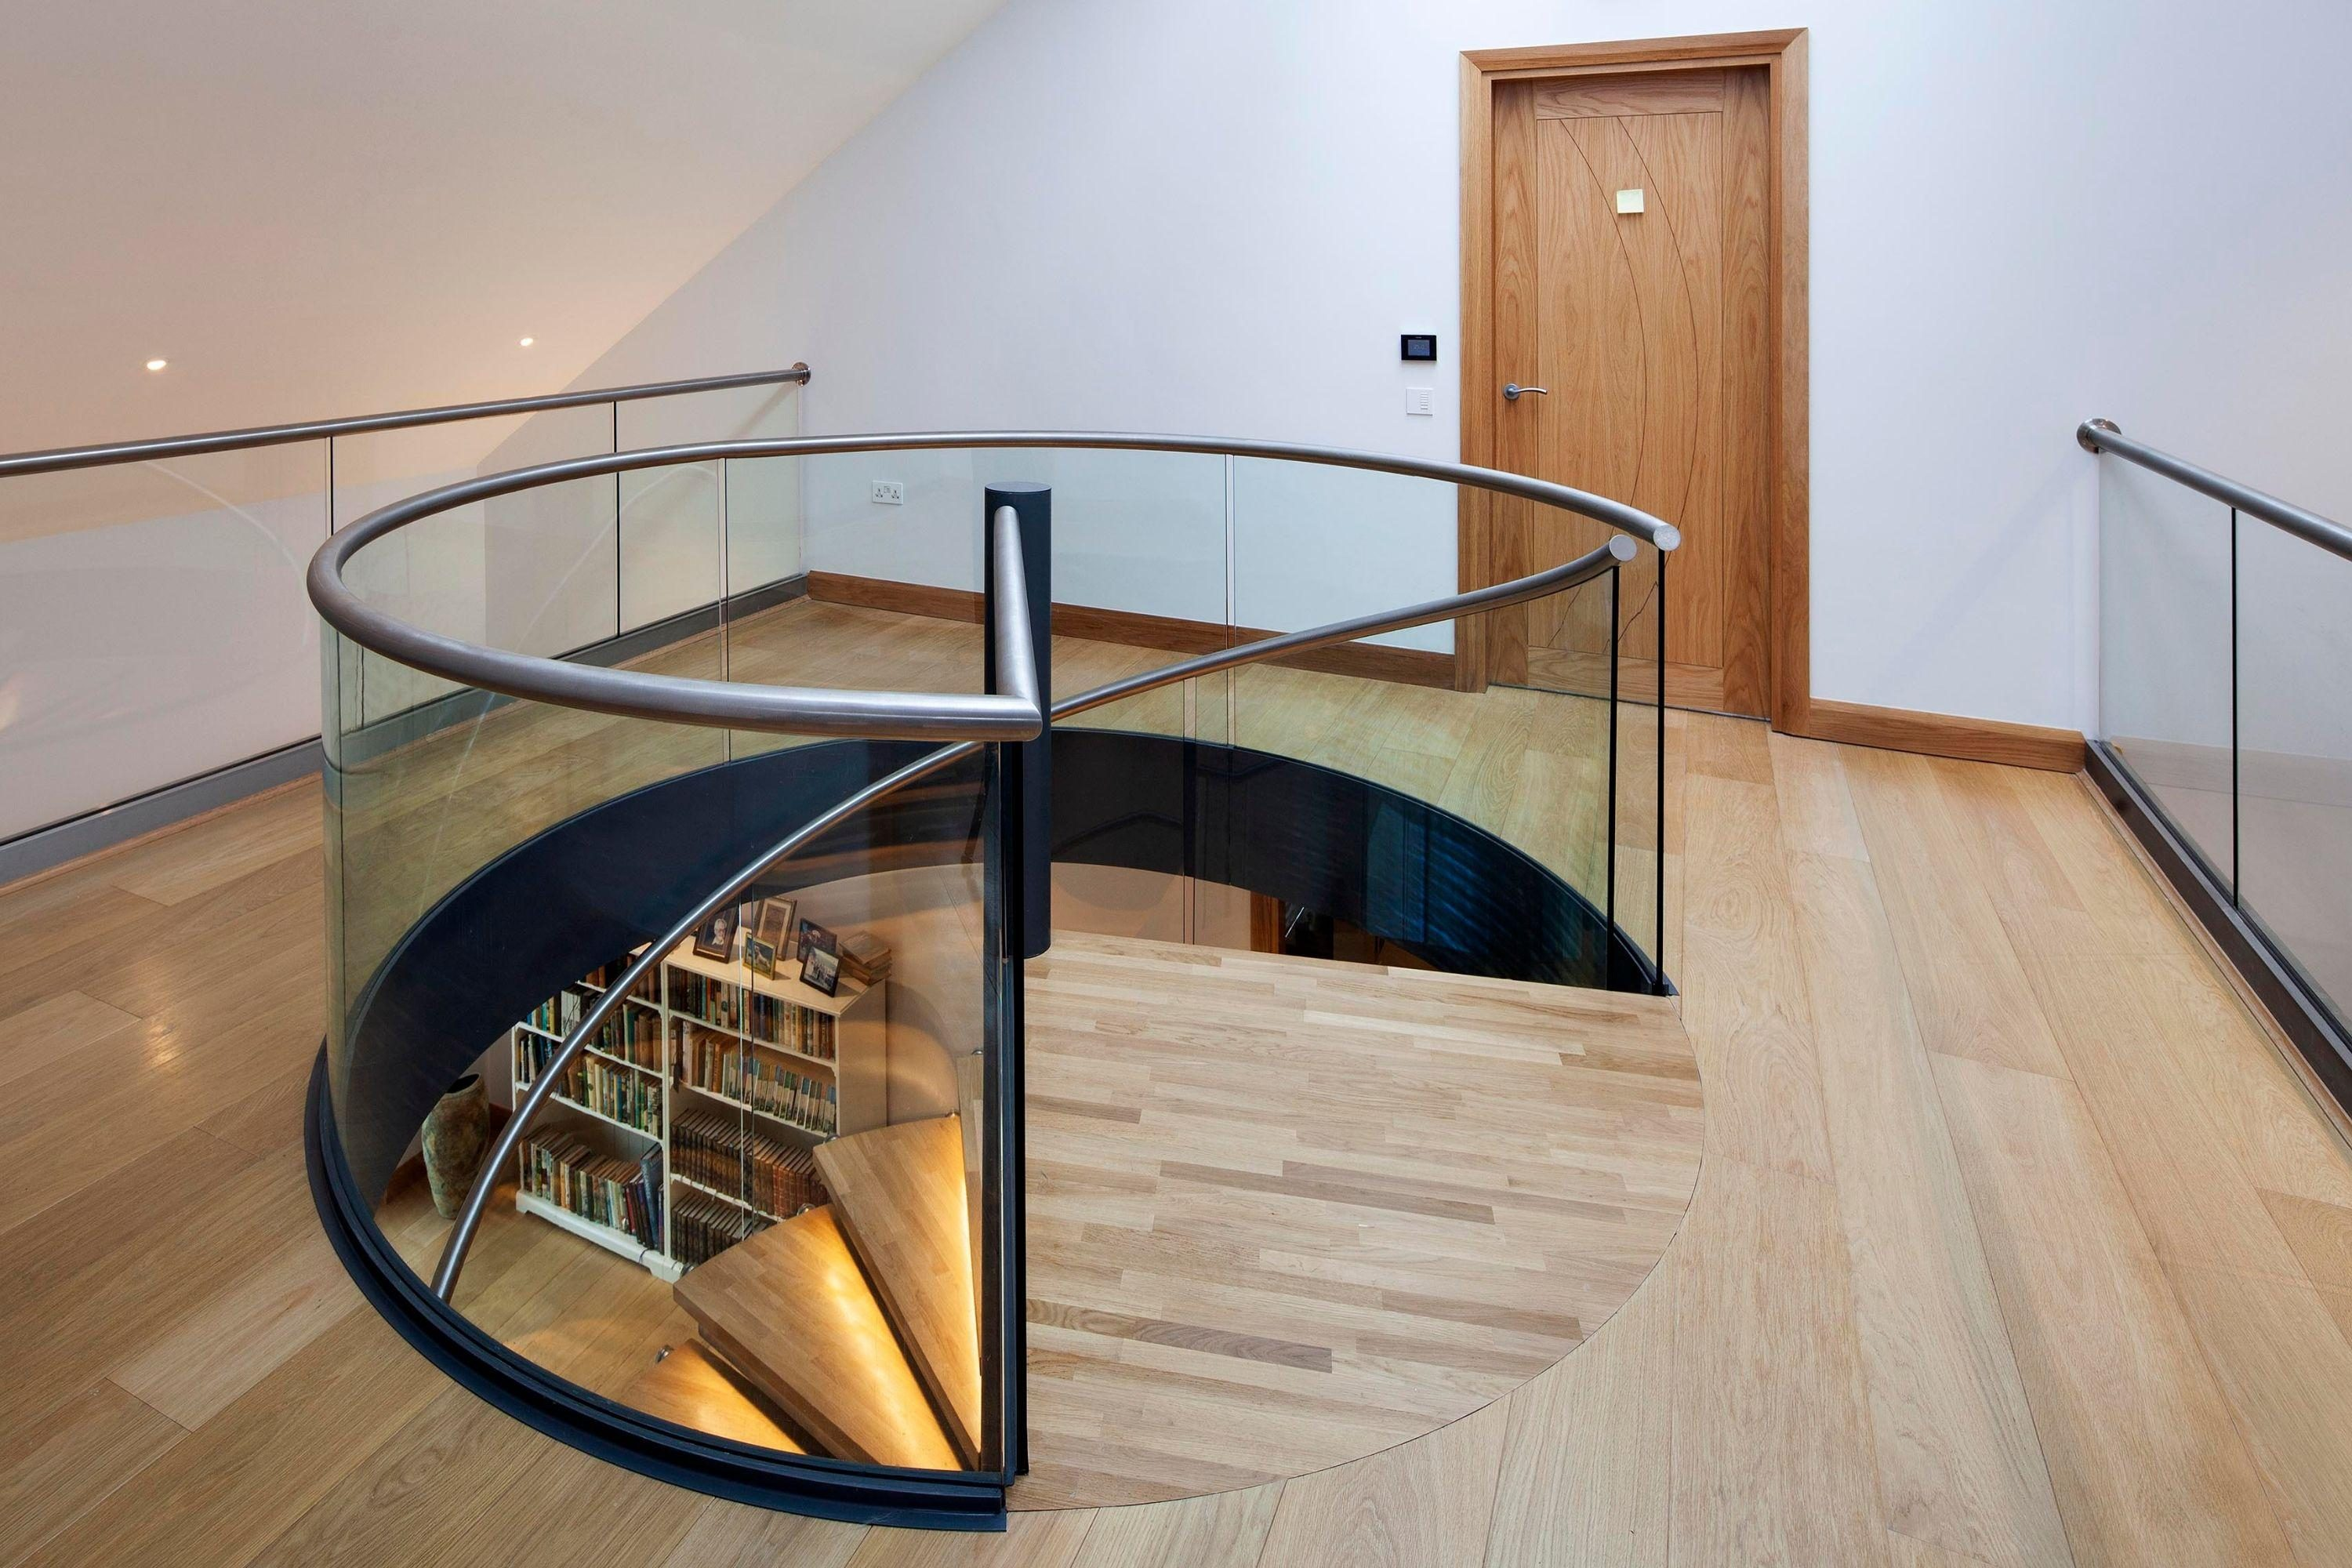 Curved glass balustrade to spiral stairs